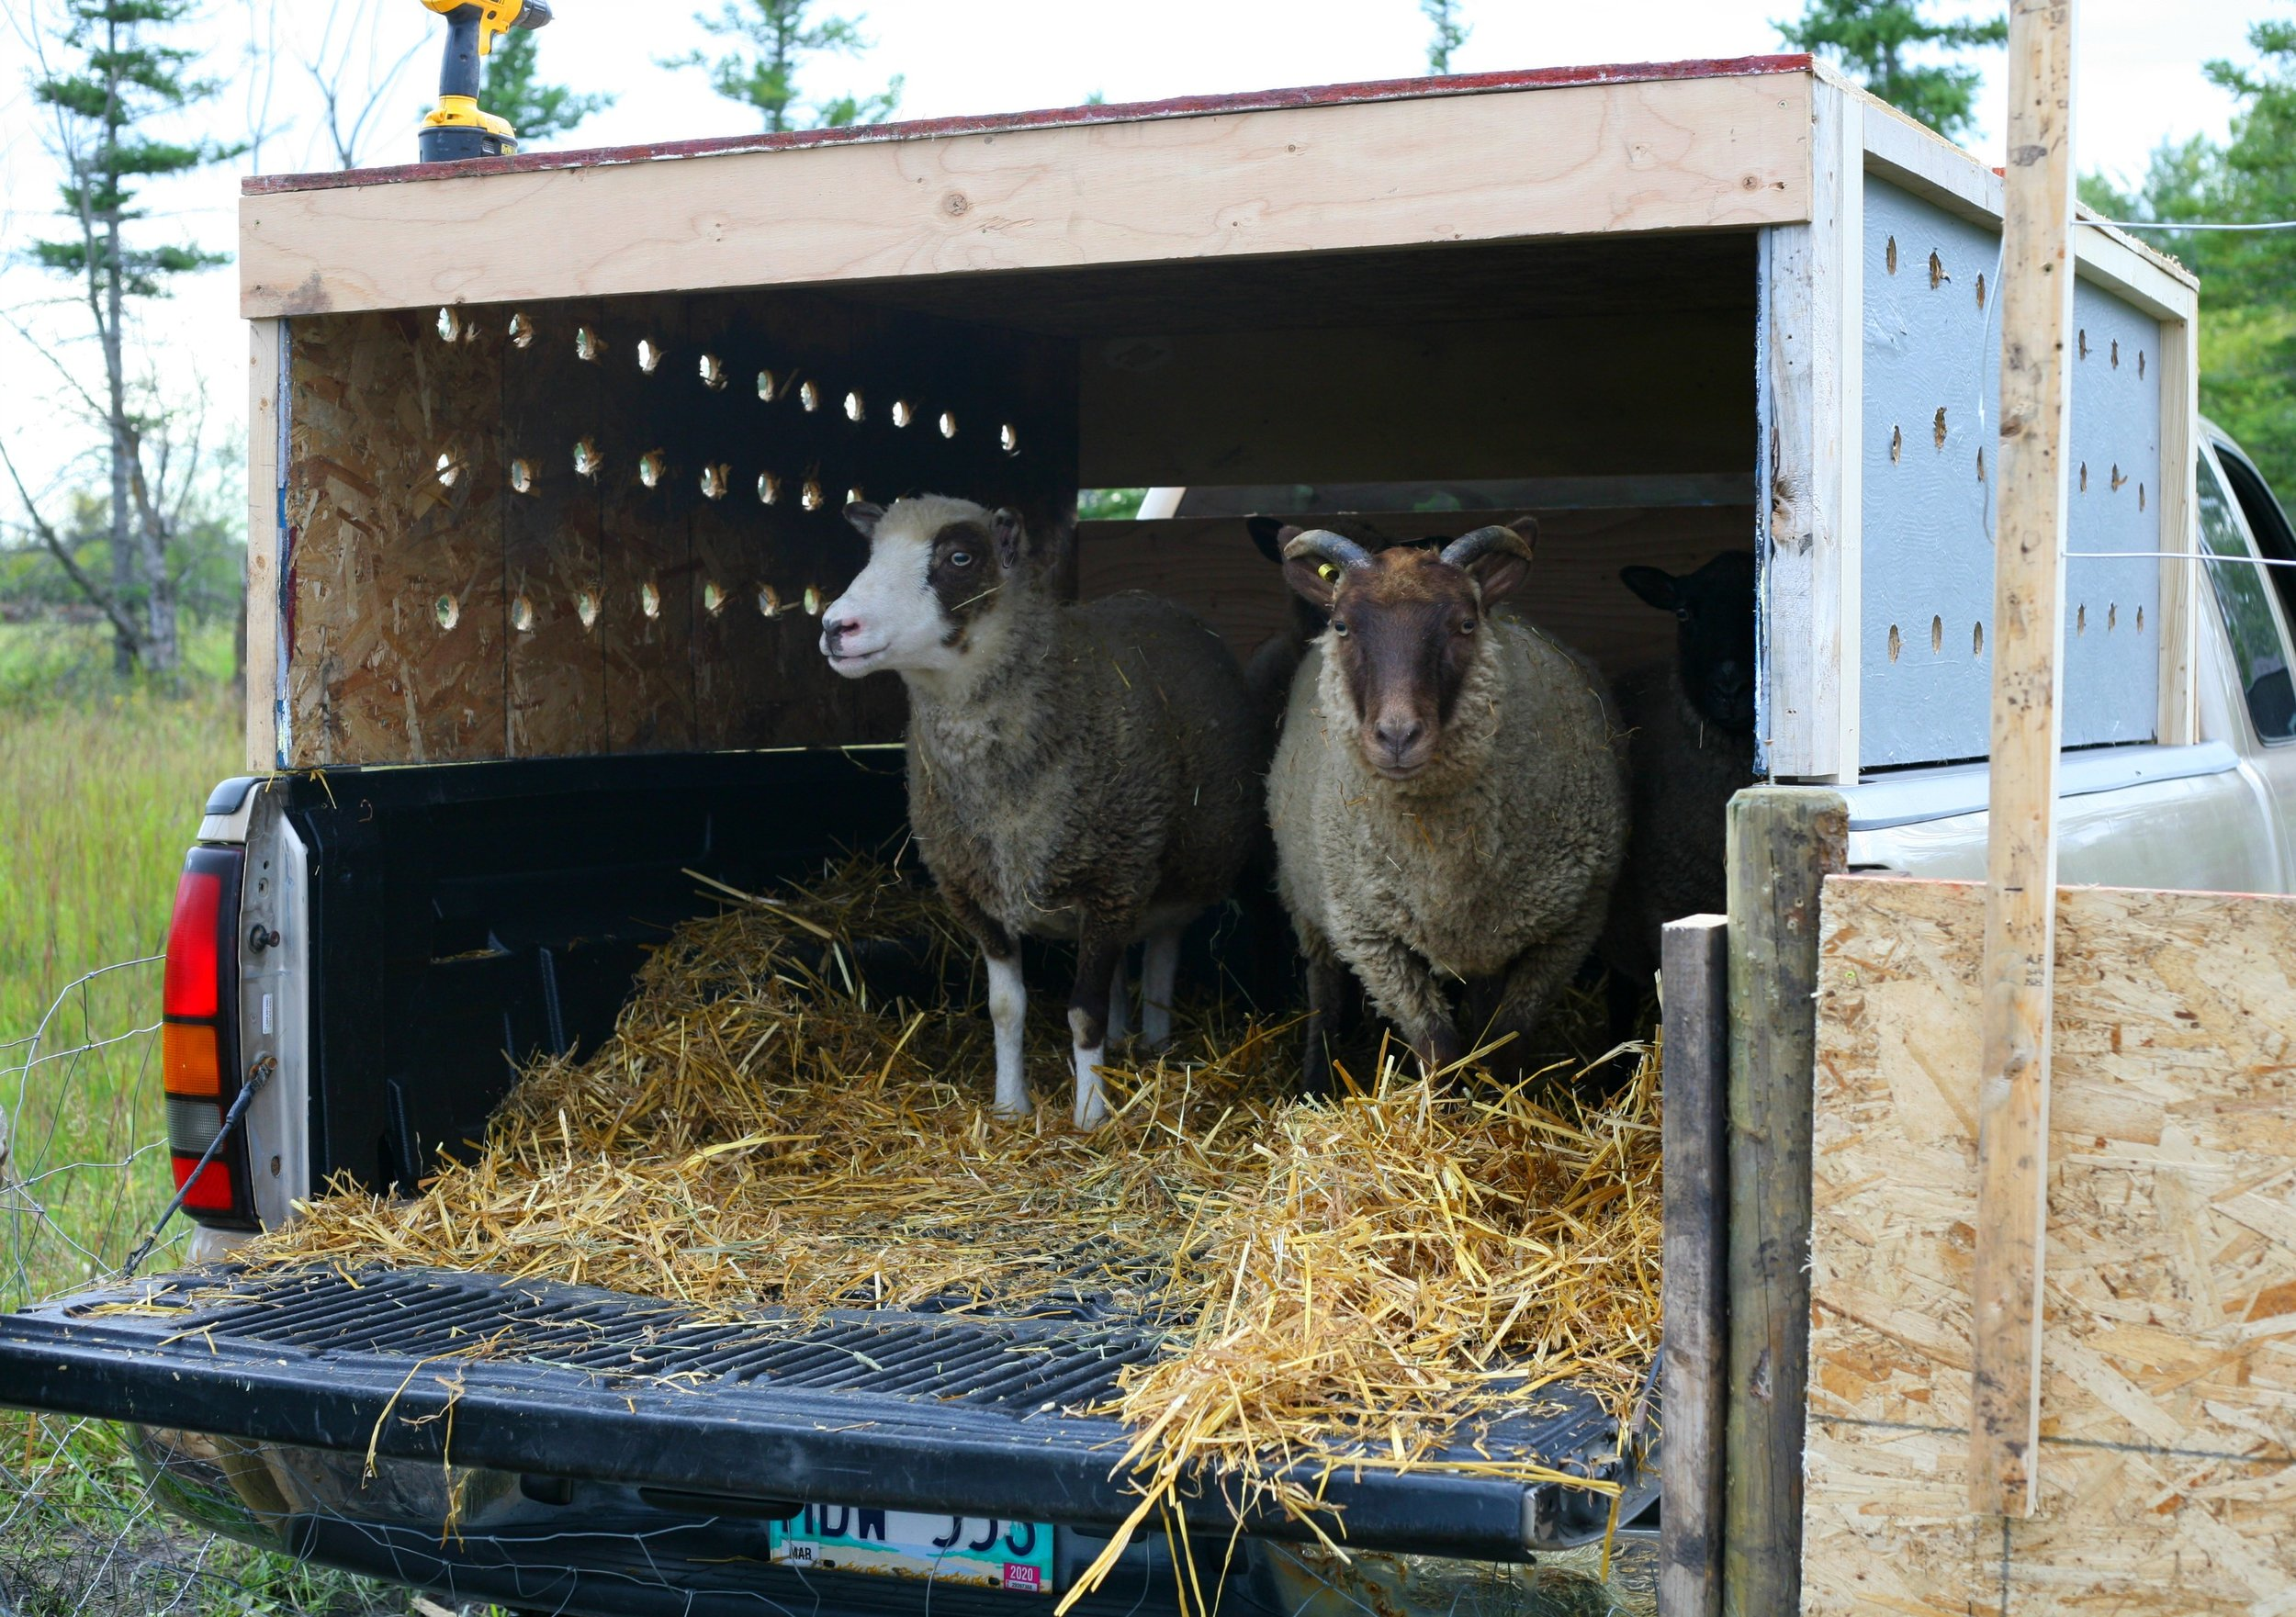 They were not totally sure if they wanted to get out of the truck.